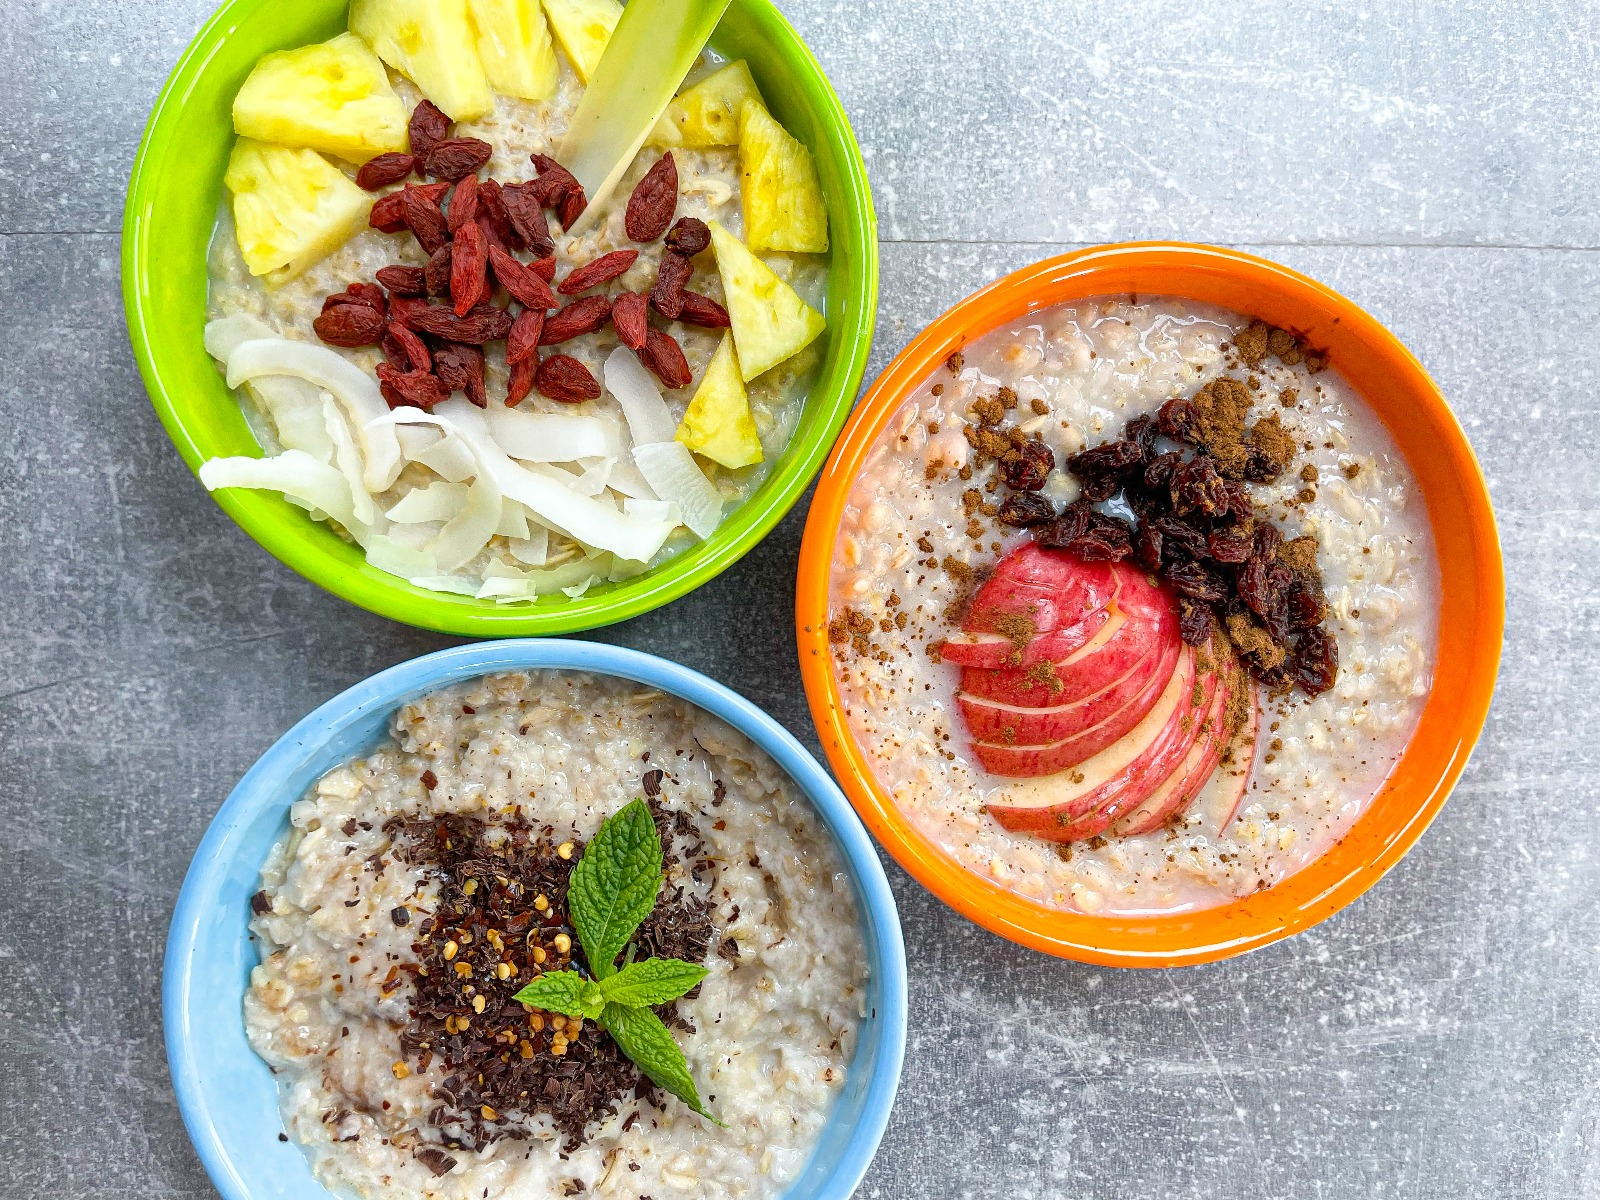 Three porridge bowls, one topped with pineapple and goji berries, another with apple, raisins and cinnamon and the last topped with dark chocolate and chilli.